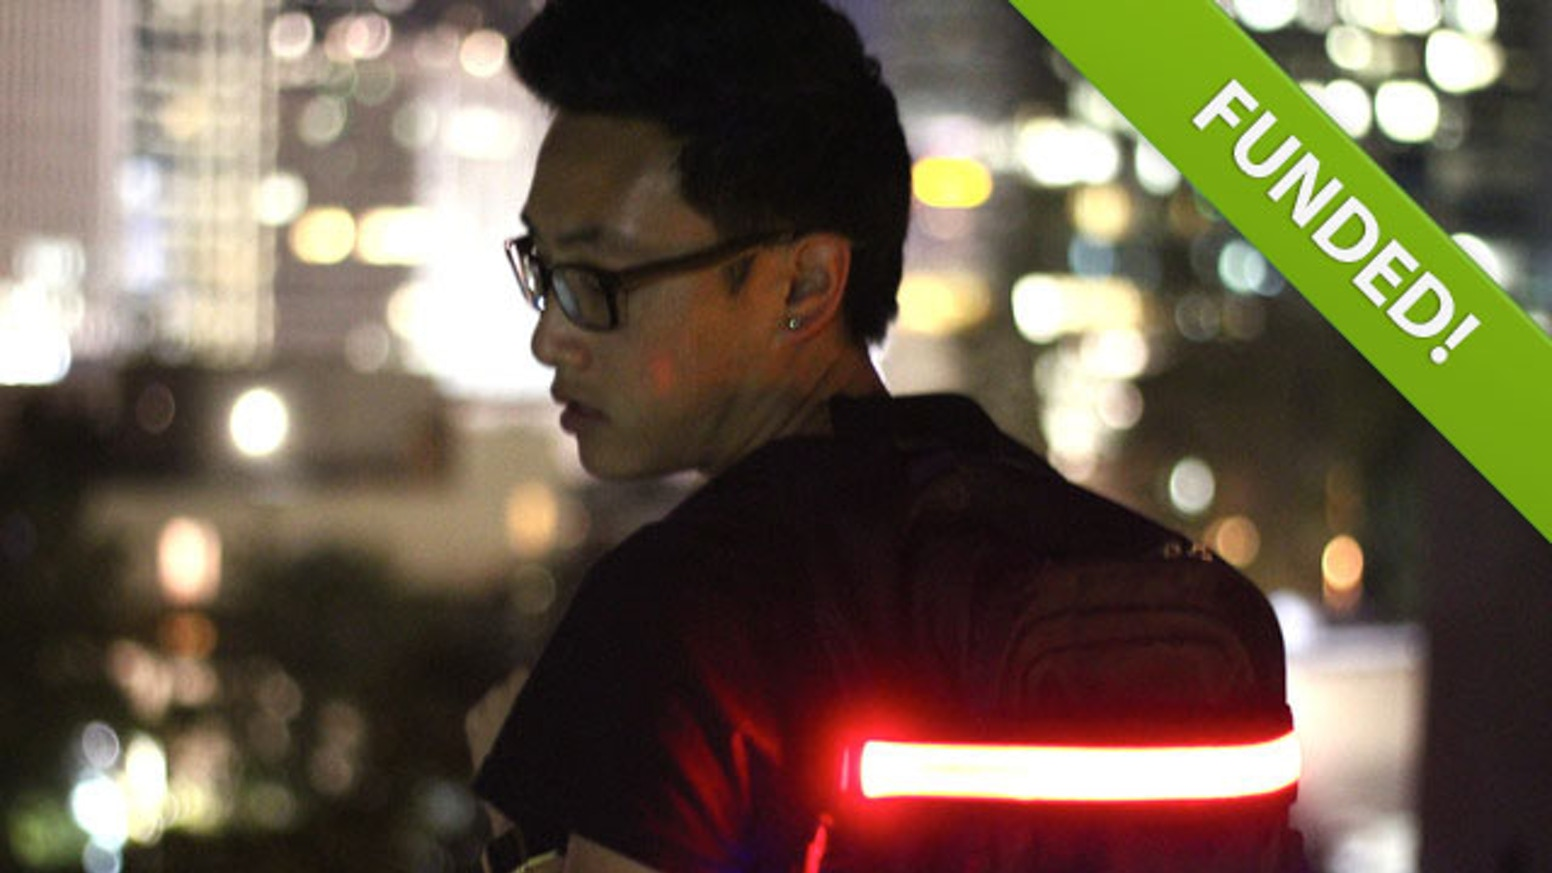 Halo Belt 2.0 is the perfect bright and rechargeable safety device for runners, cyclists, and much more.